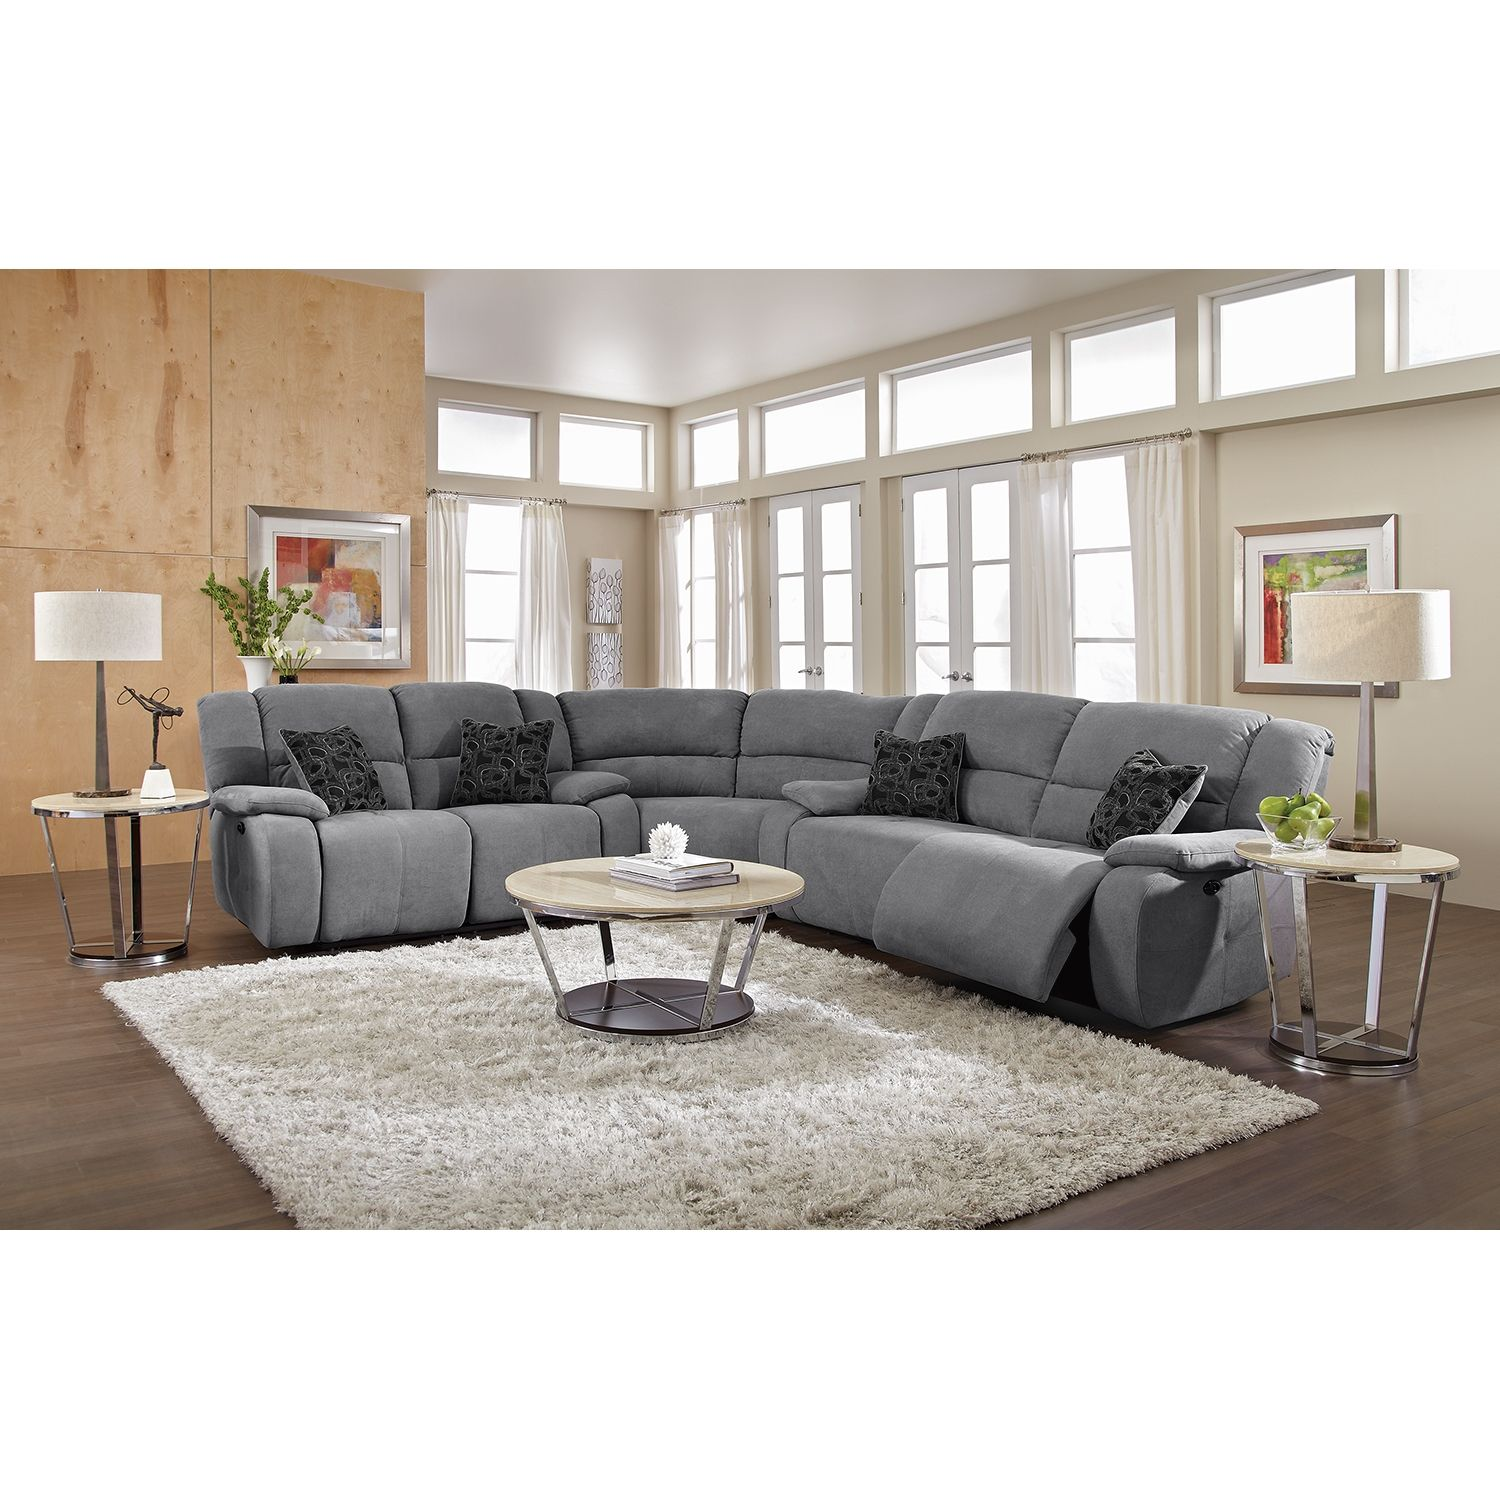 reclining sectional sofa with massage and heat appealing living room furniture  sets on sale great sectional. reclining sectional sofa with massage and heat appealing living